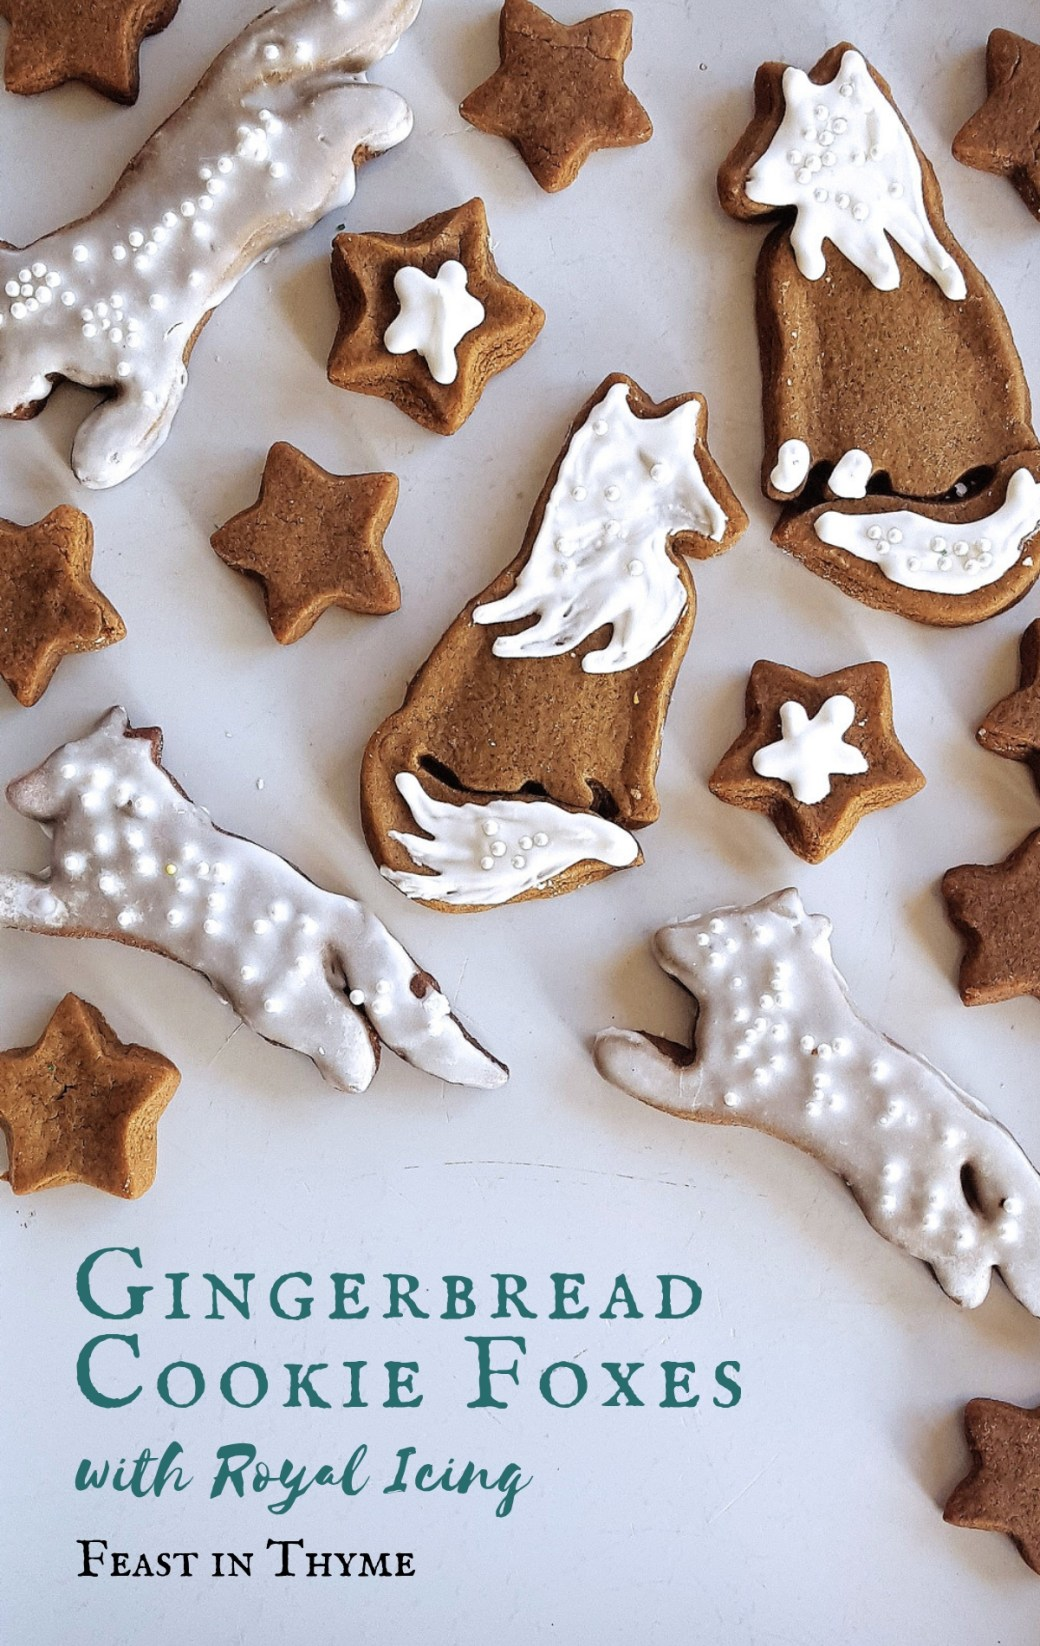 With warm spices, dark molasses, and only a handful of ingredients, these gingerbread cookie foxes are a classic addition to any cookie platter. #holidays #cookies #winter #gingerbread | FeastInThyme.com